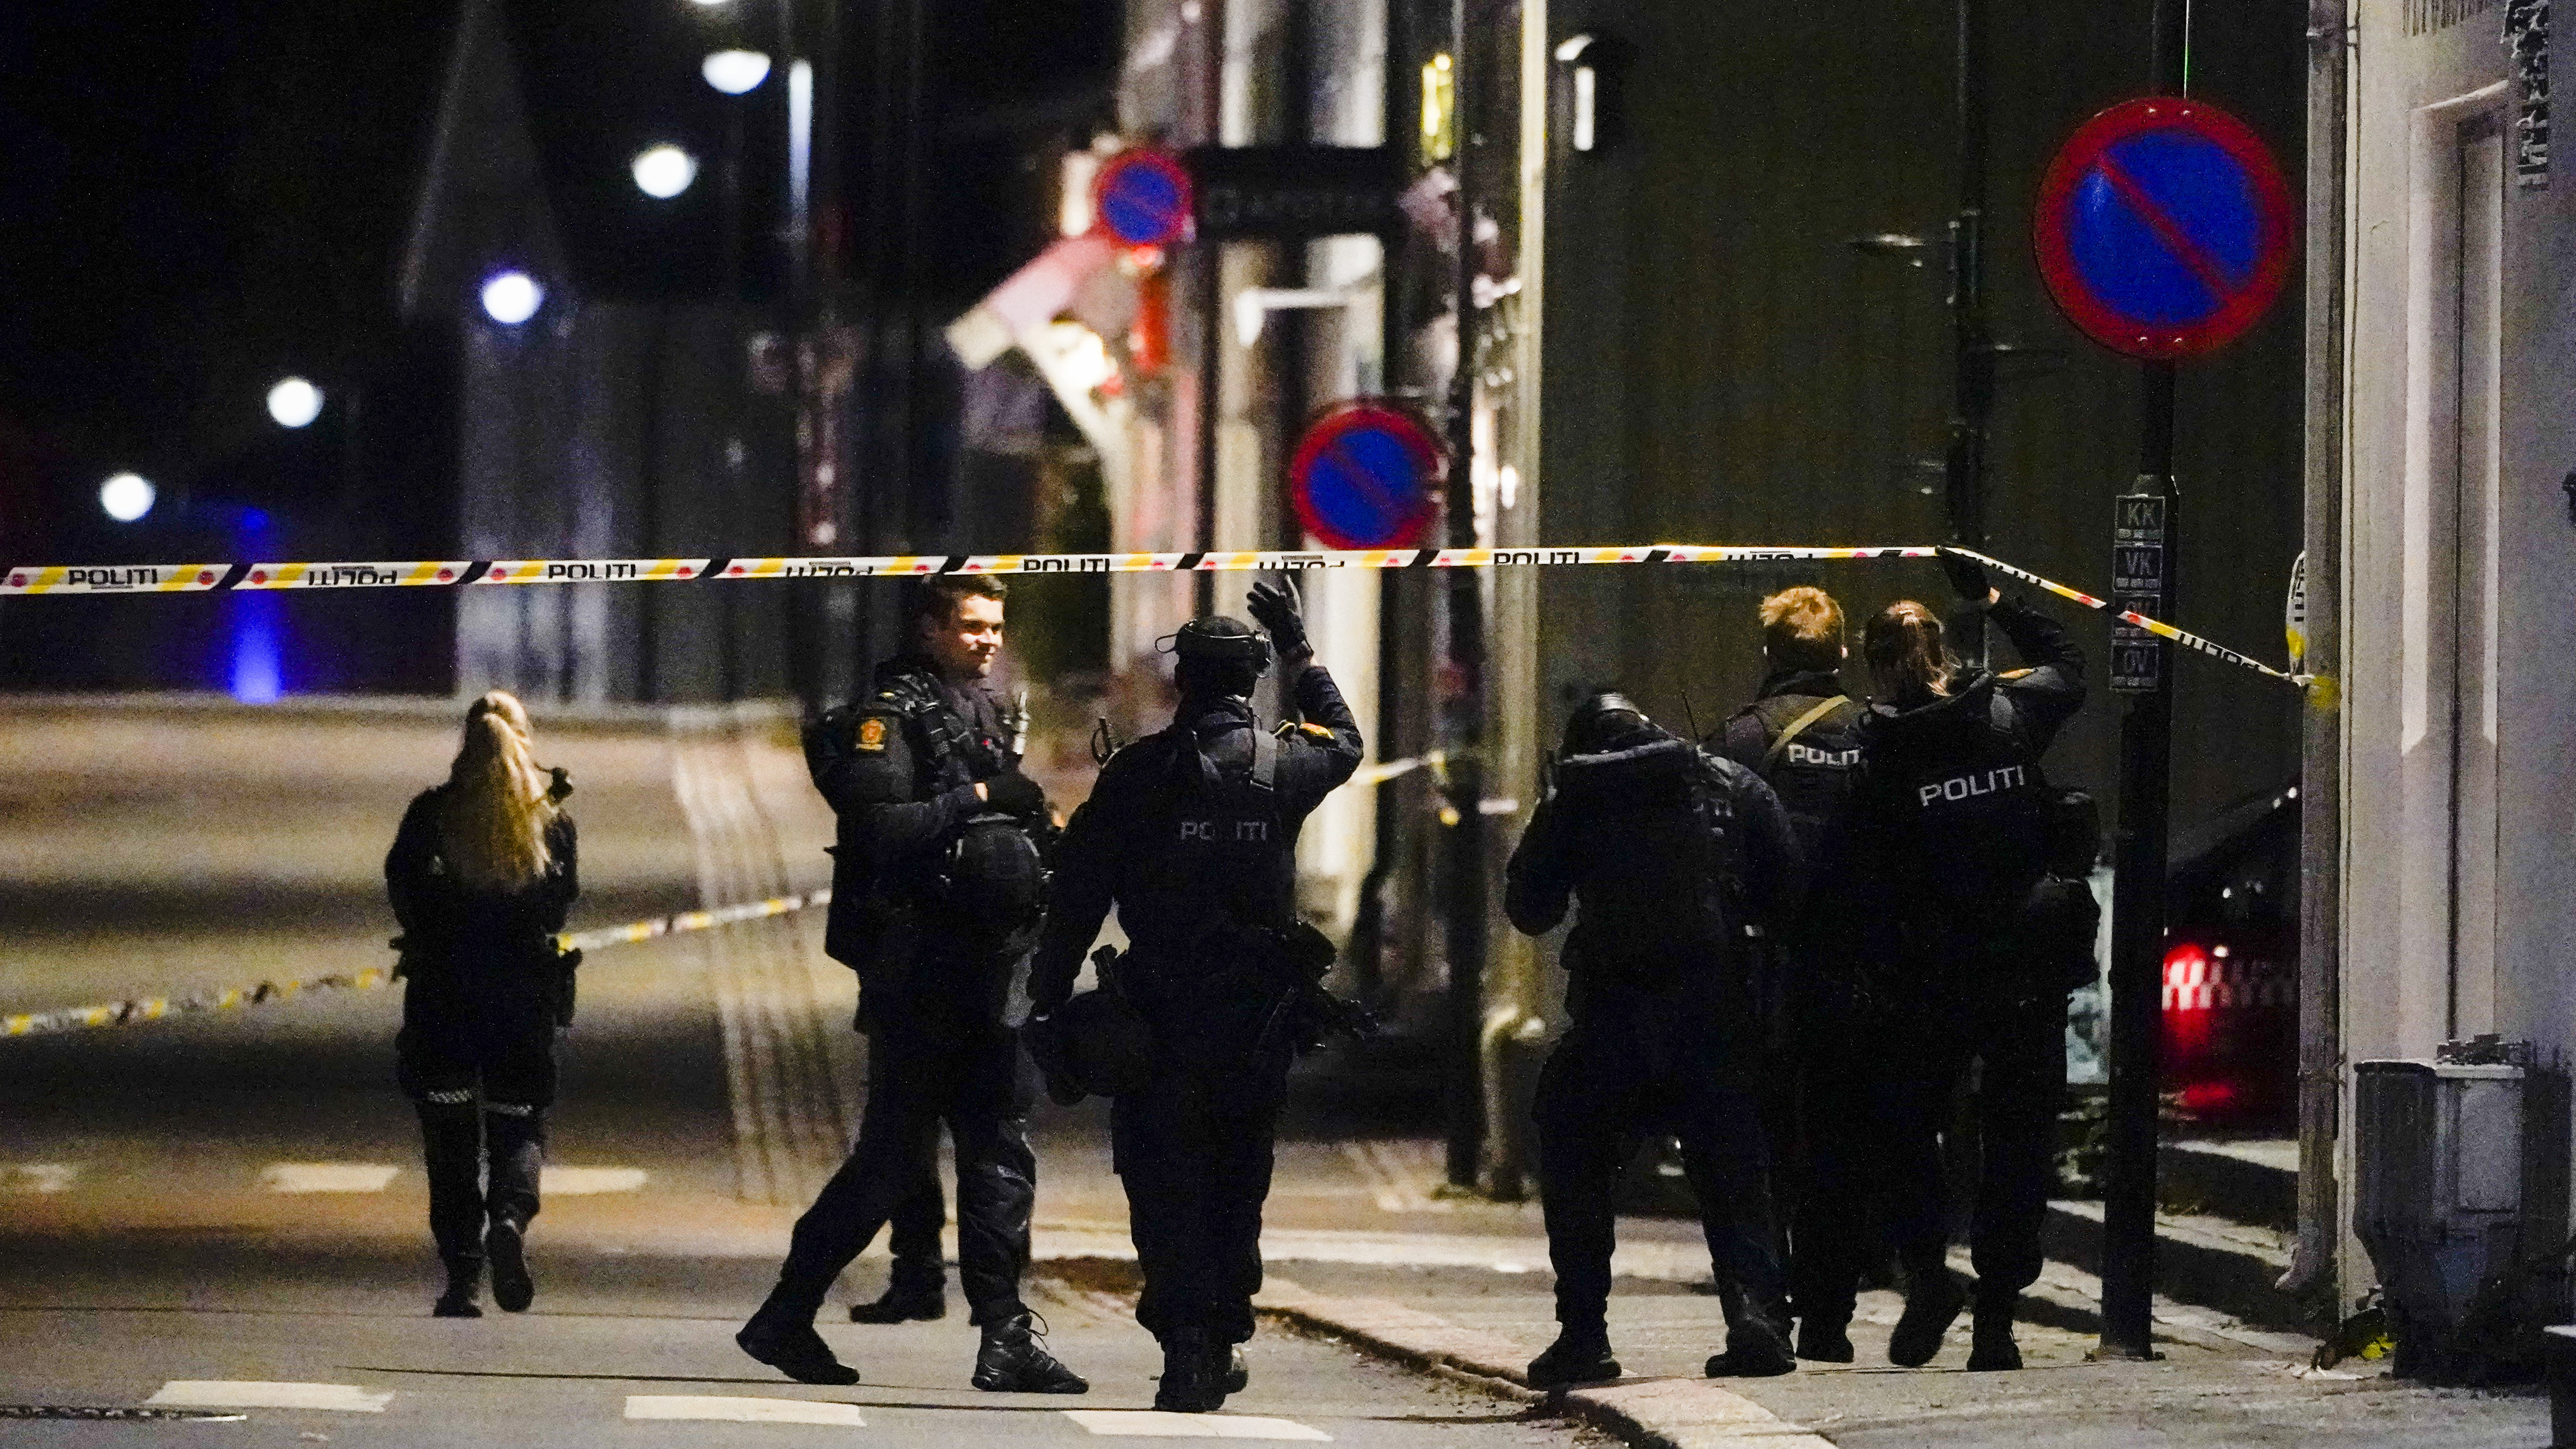 Several people killed by man with bow and arrow in Norway